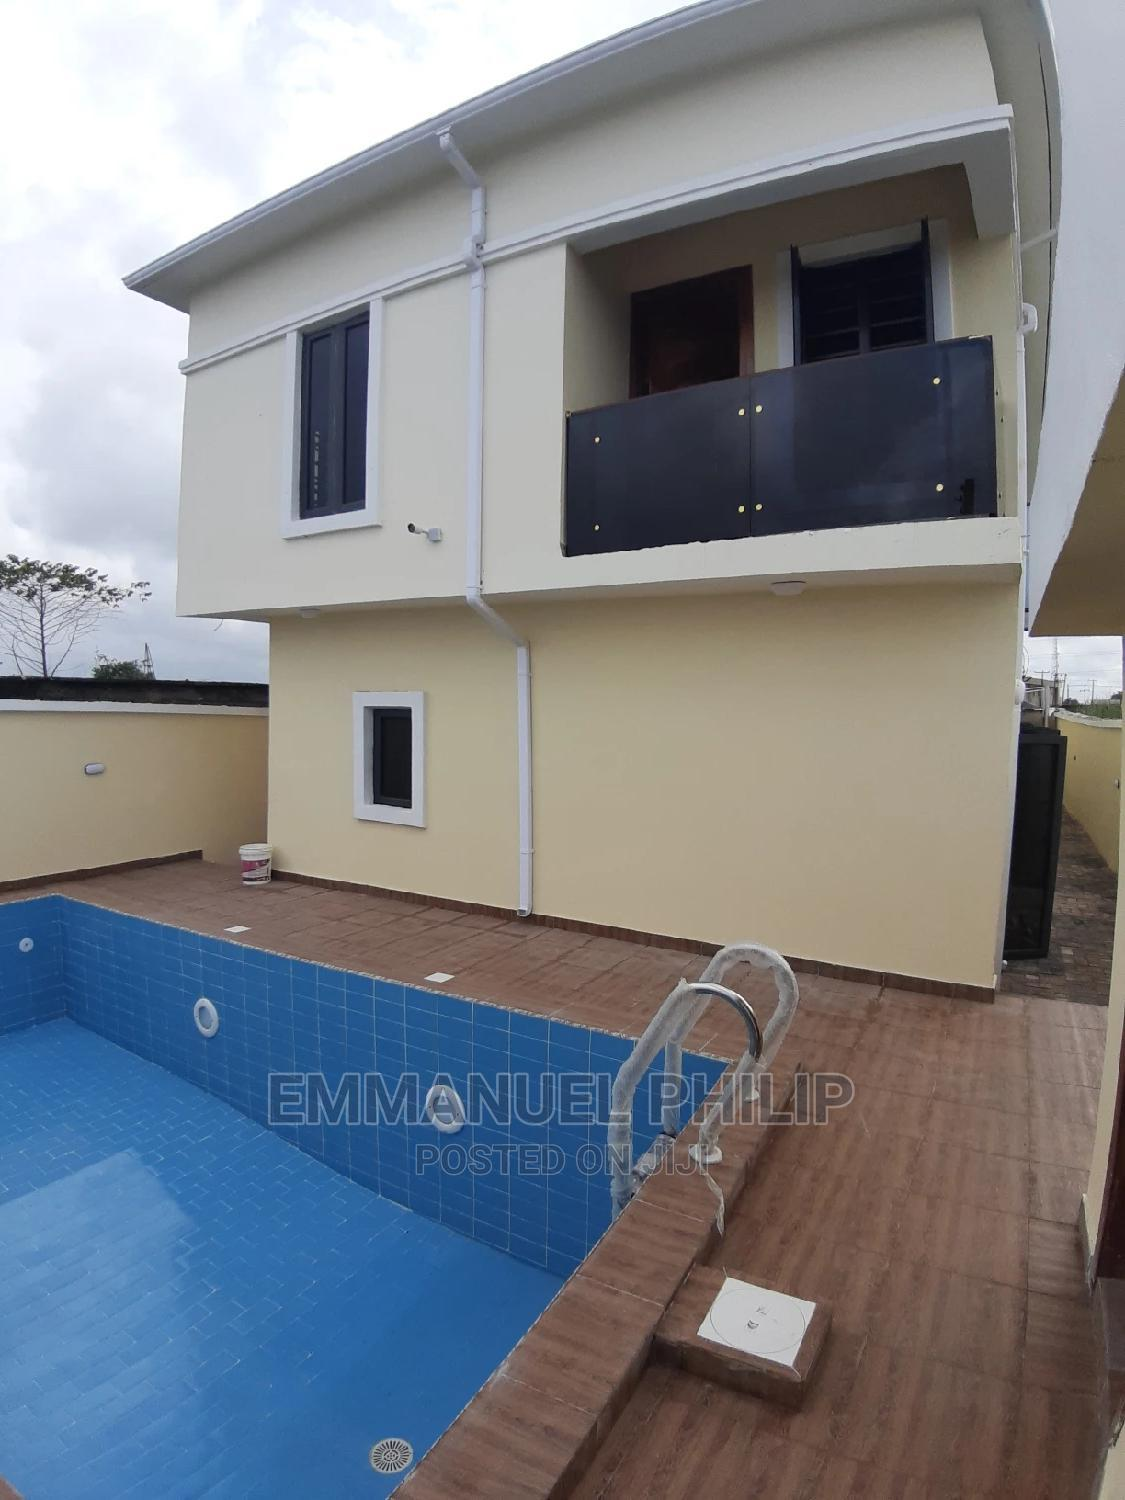 Moderm 4 Bedroom Detached Duplex With Swimming Pool | Houses & Apartments For Sale for sale in Lekki, Lagos State, Nigeria